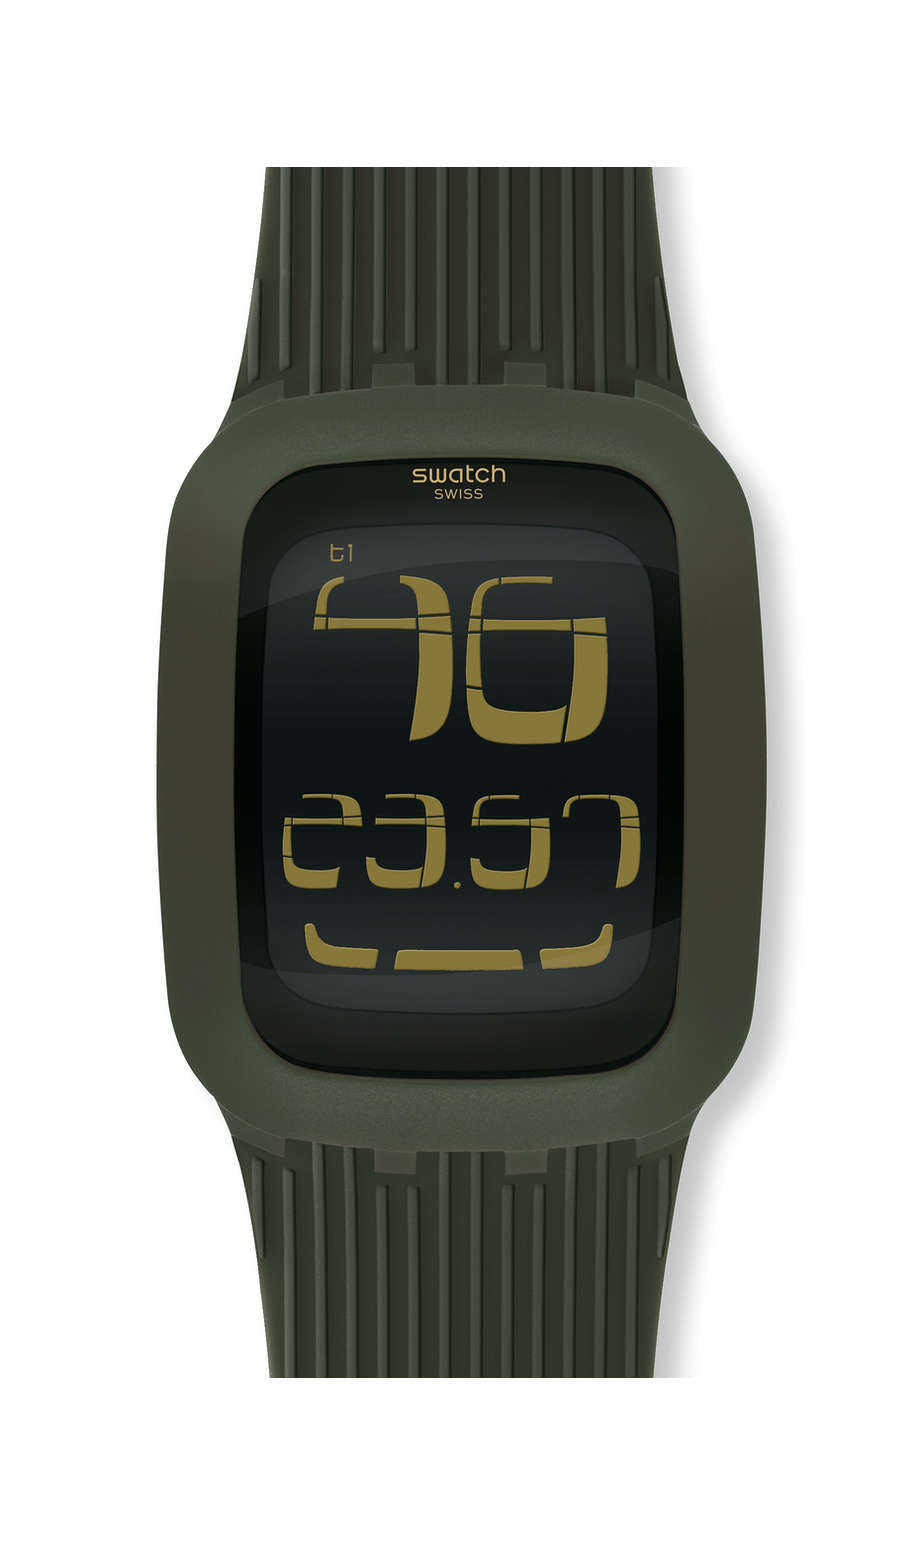 Swatch - SWATCH TOUCH OLIVE - 1